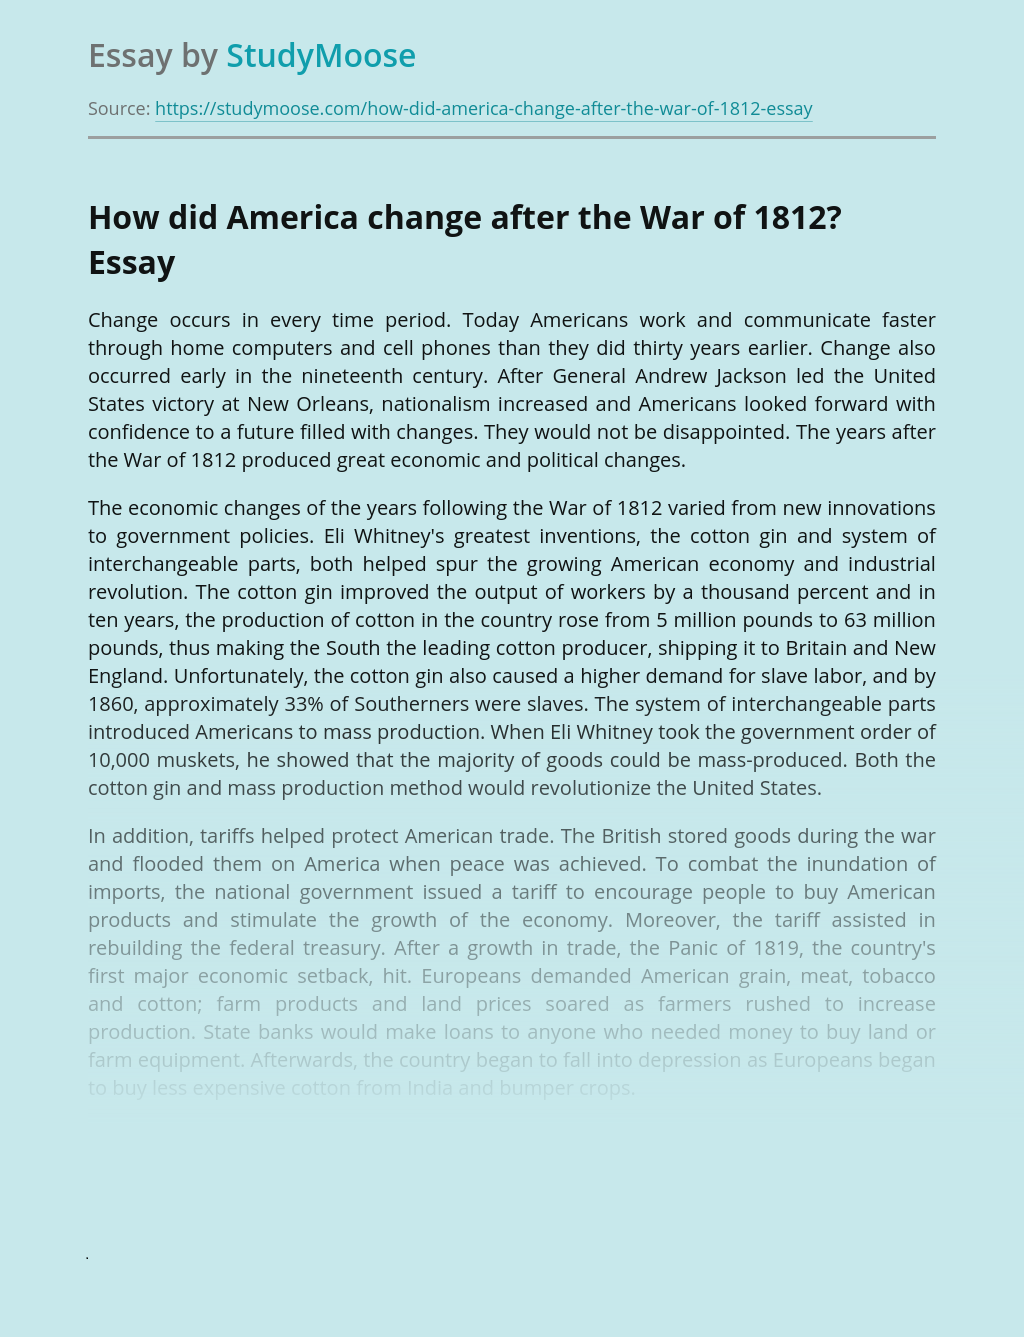 How did America change after the War of 1812?